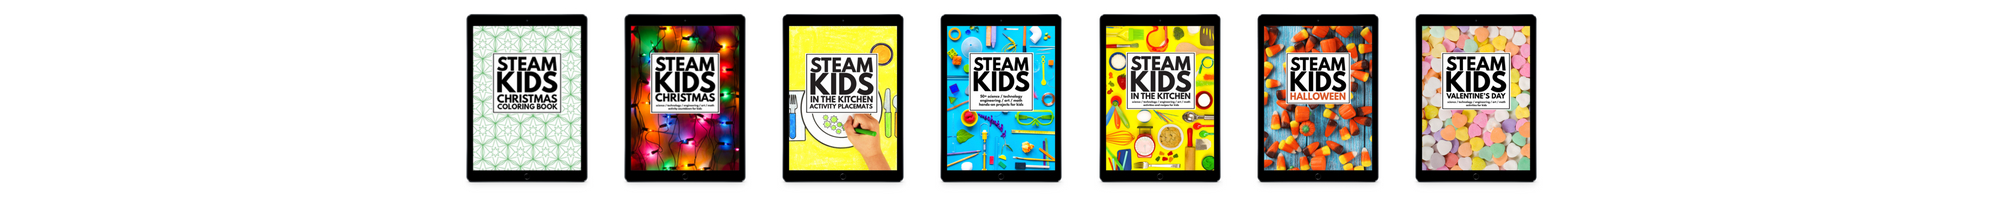 STEAM Kids All Ebooks 2000x200